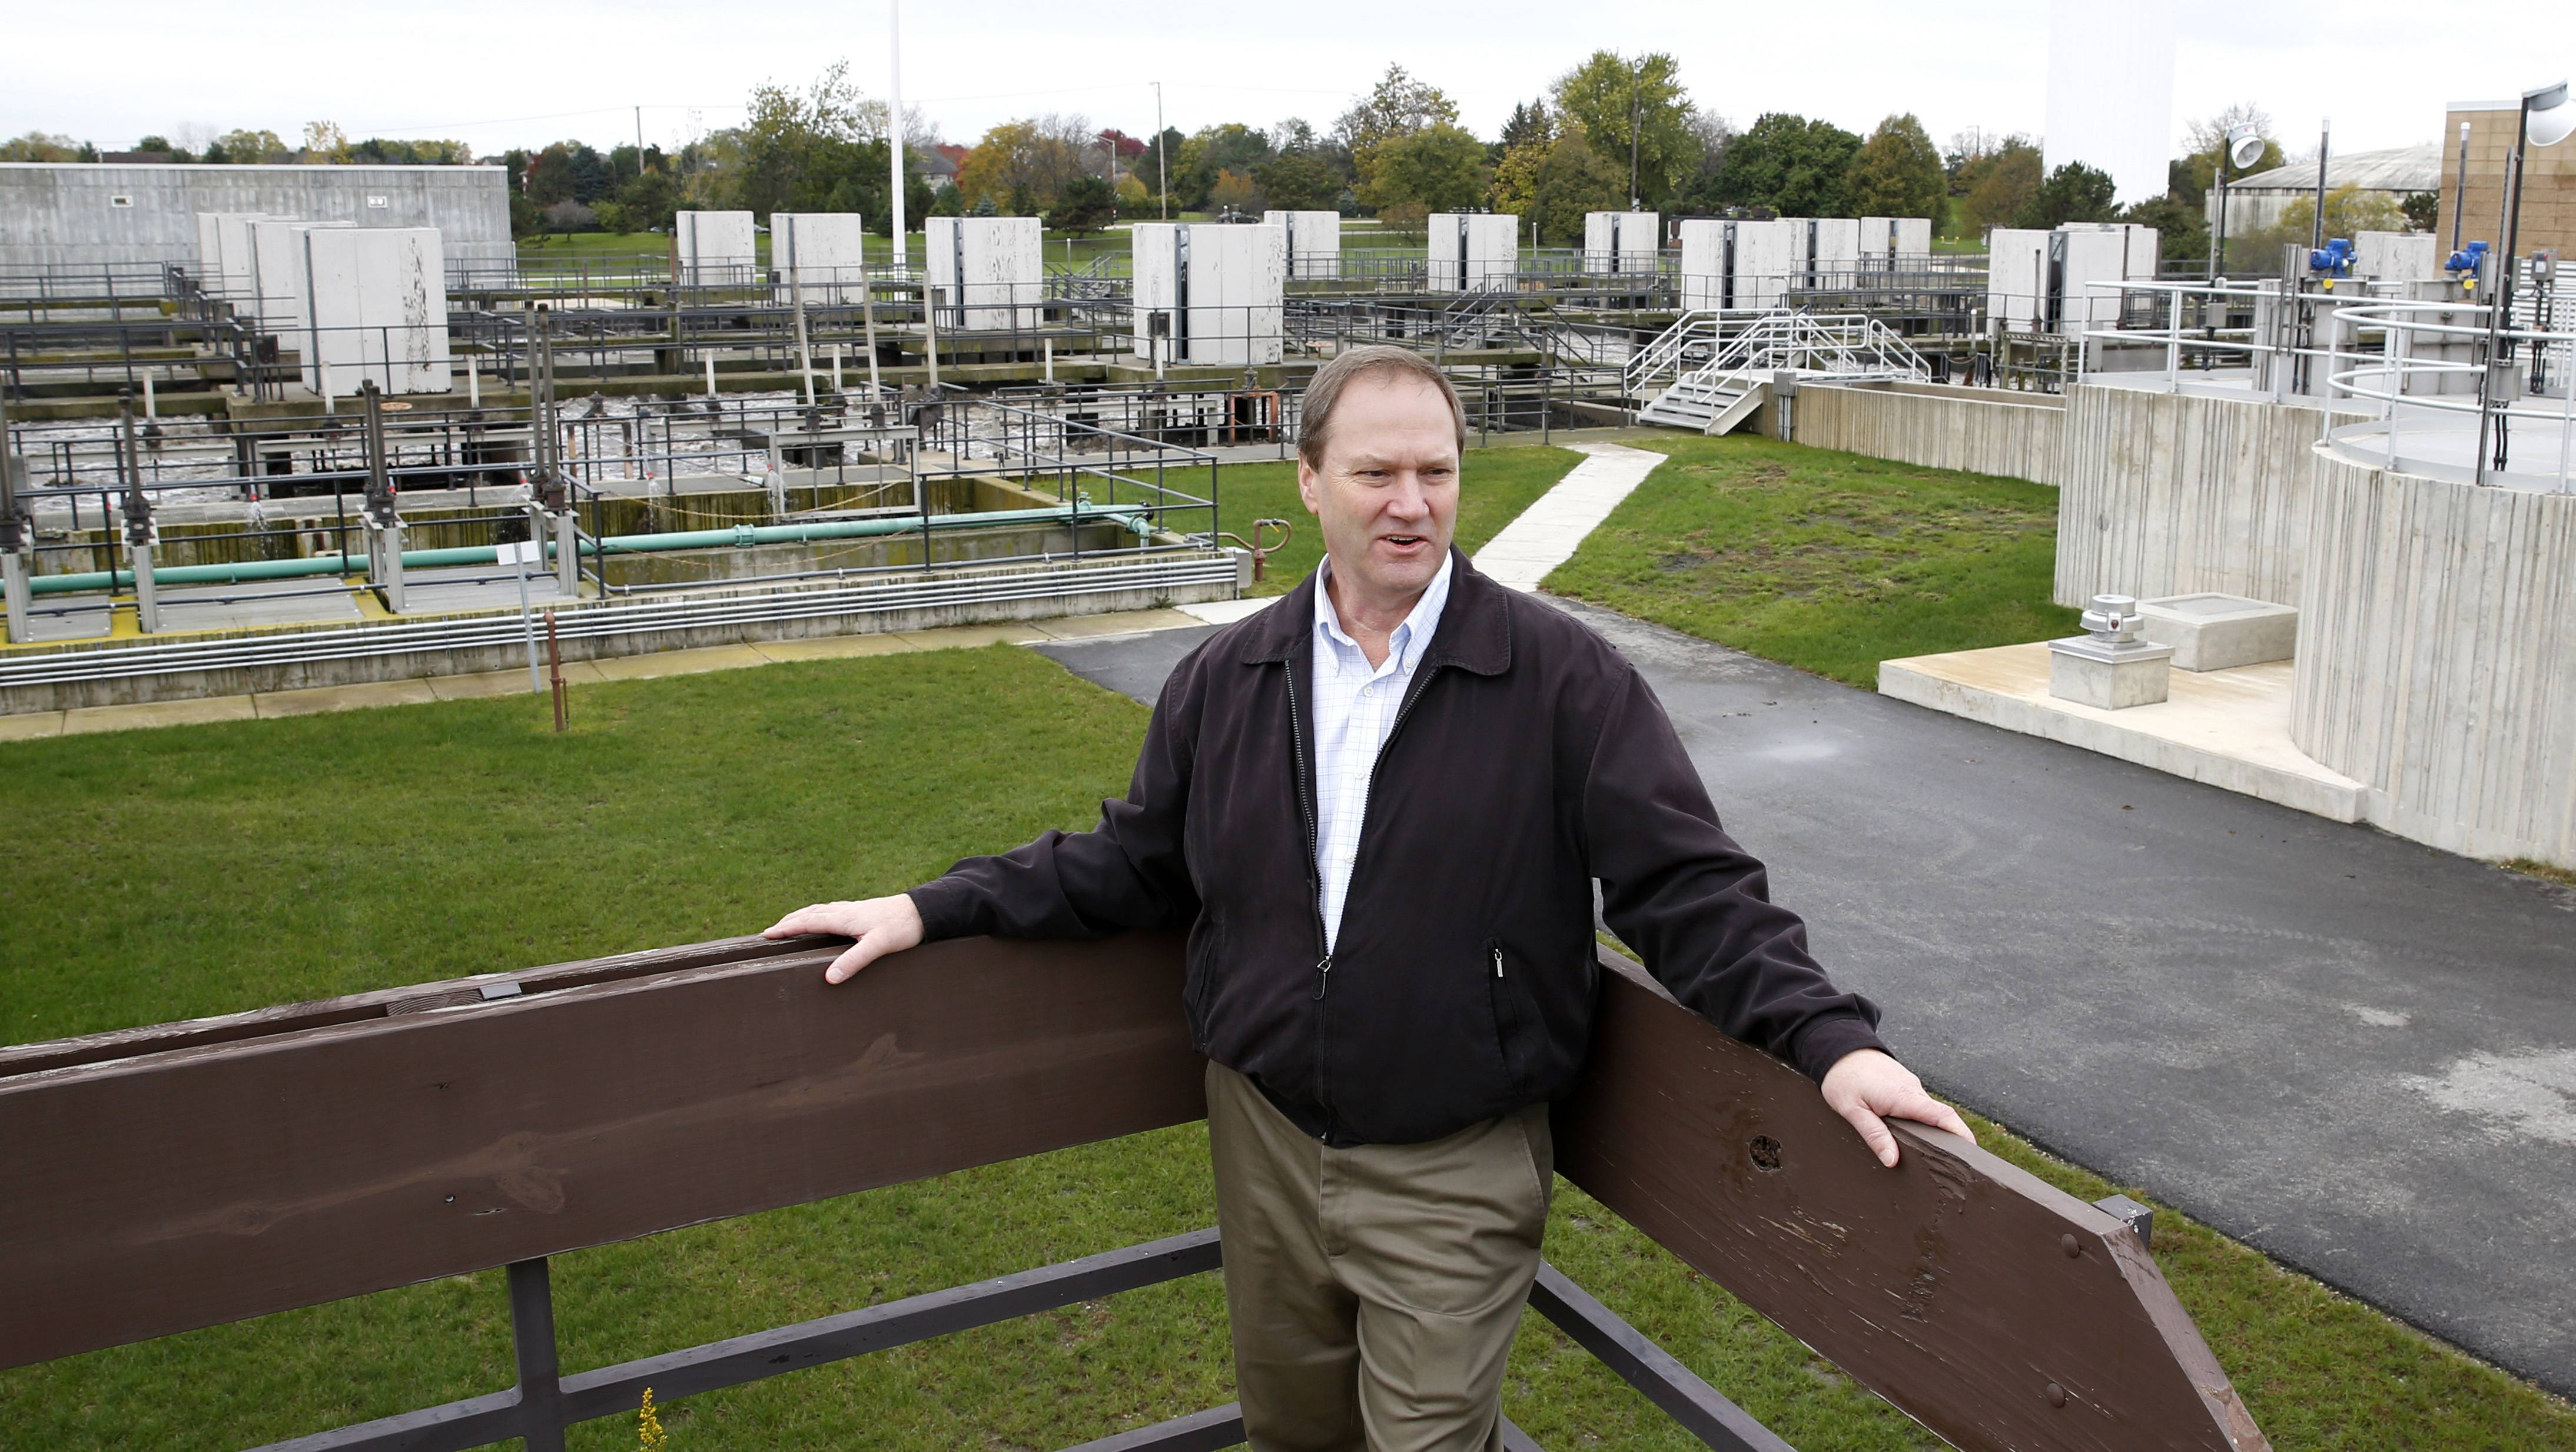 Jim Holzapfel, water and wastewater utility director for the city of Naperville, is recommending water rate increases each of the next five years to pay for operating costs, maintenance and improvement projects to the Springbrook Water Reclamation Center and the entire water delivery system.